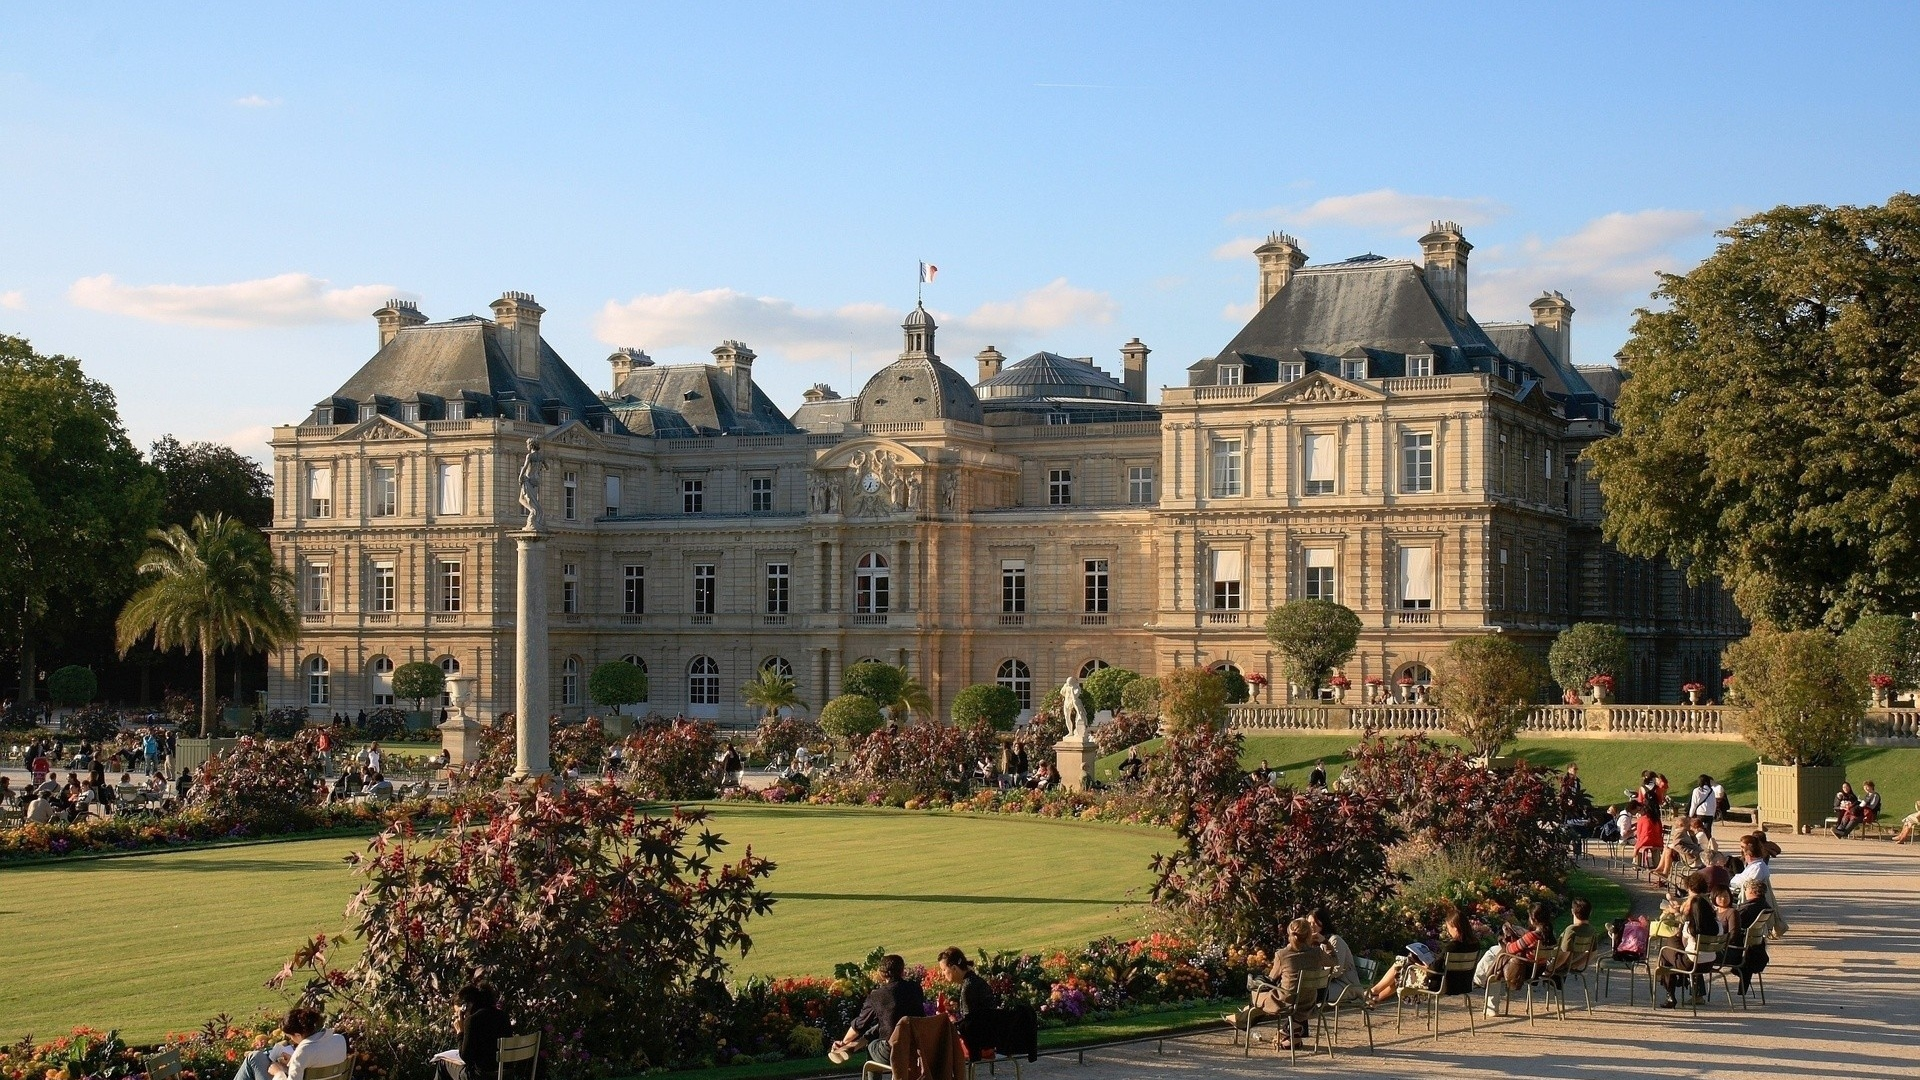 Luxembourg Palace Wallpapers and Background Images   stmednet 1920x1080